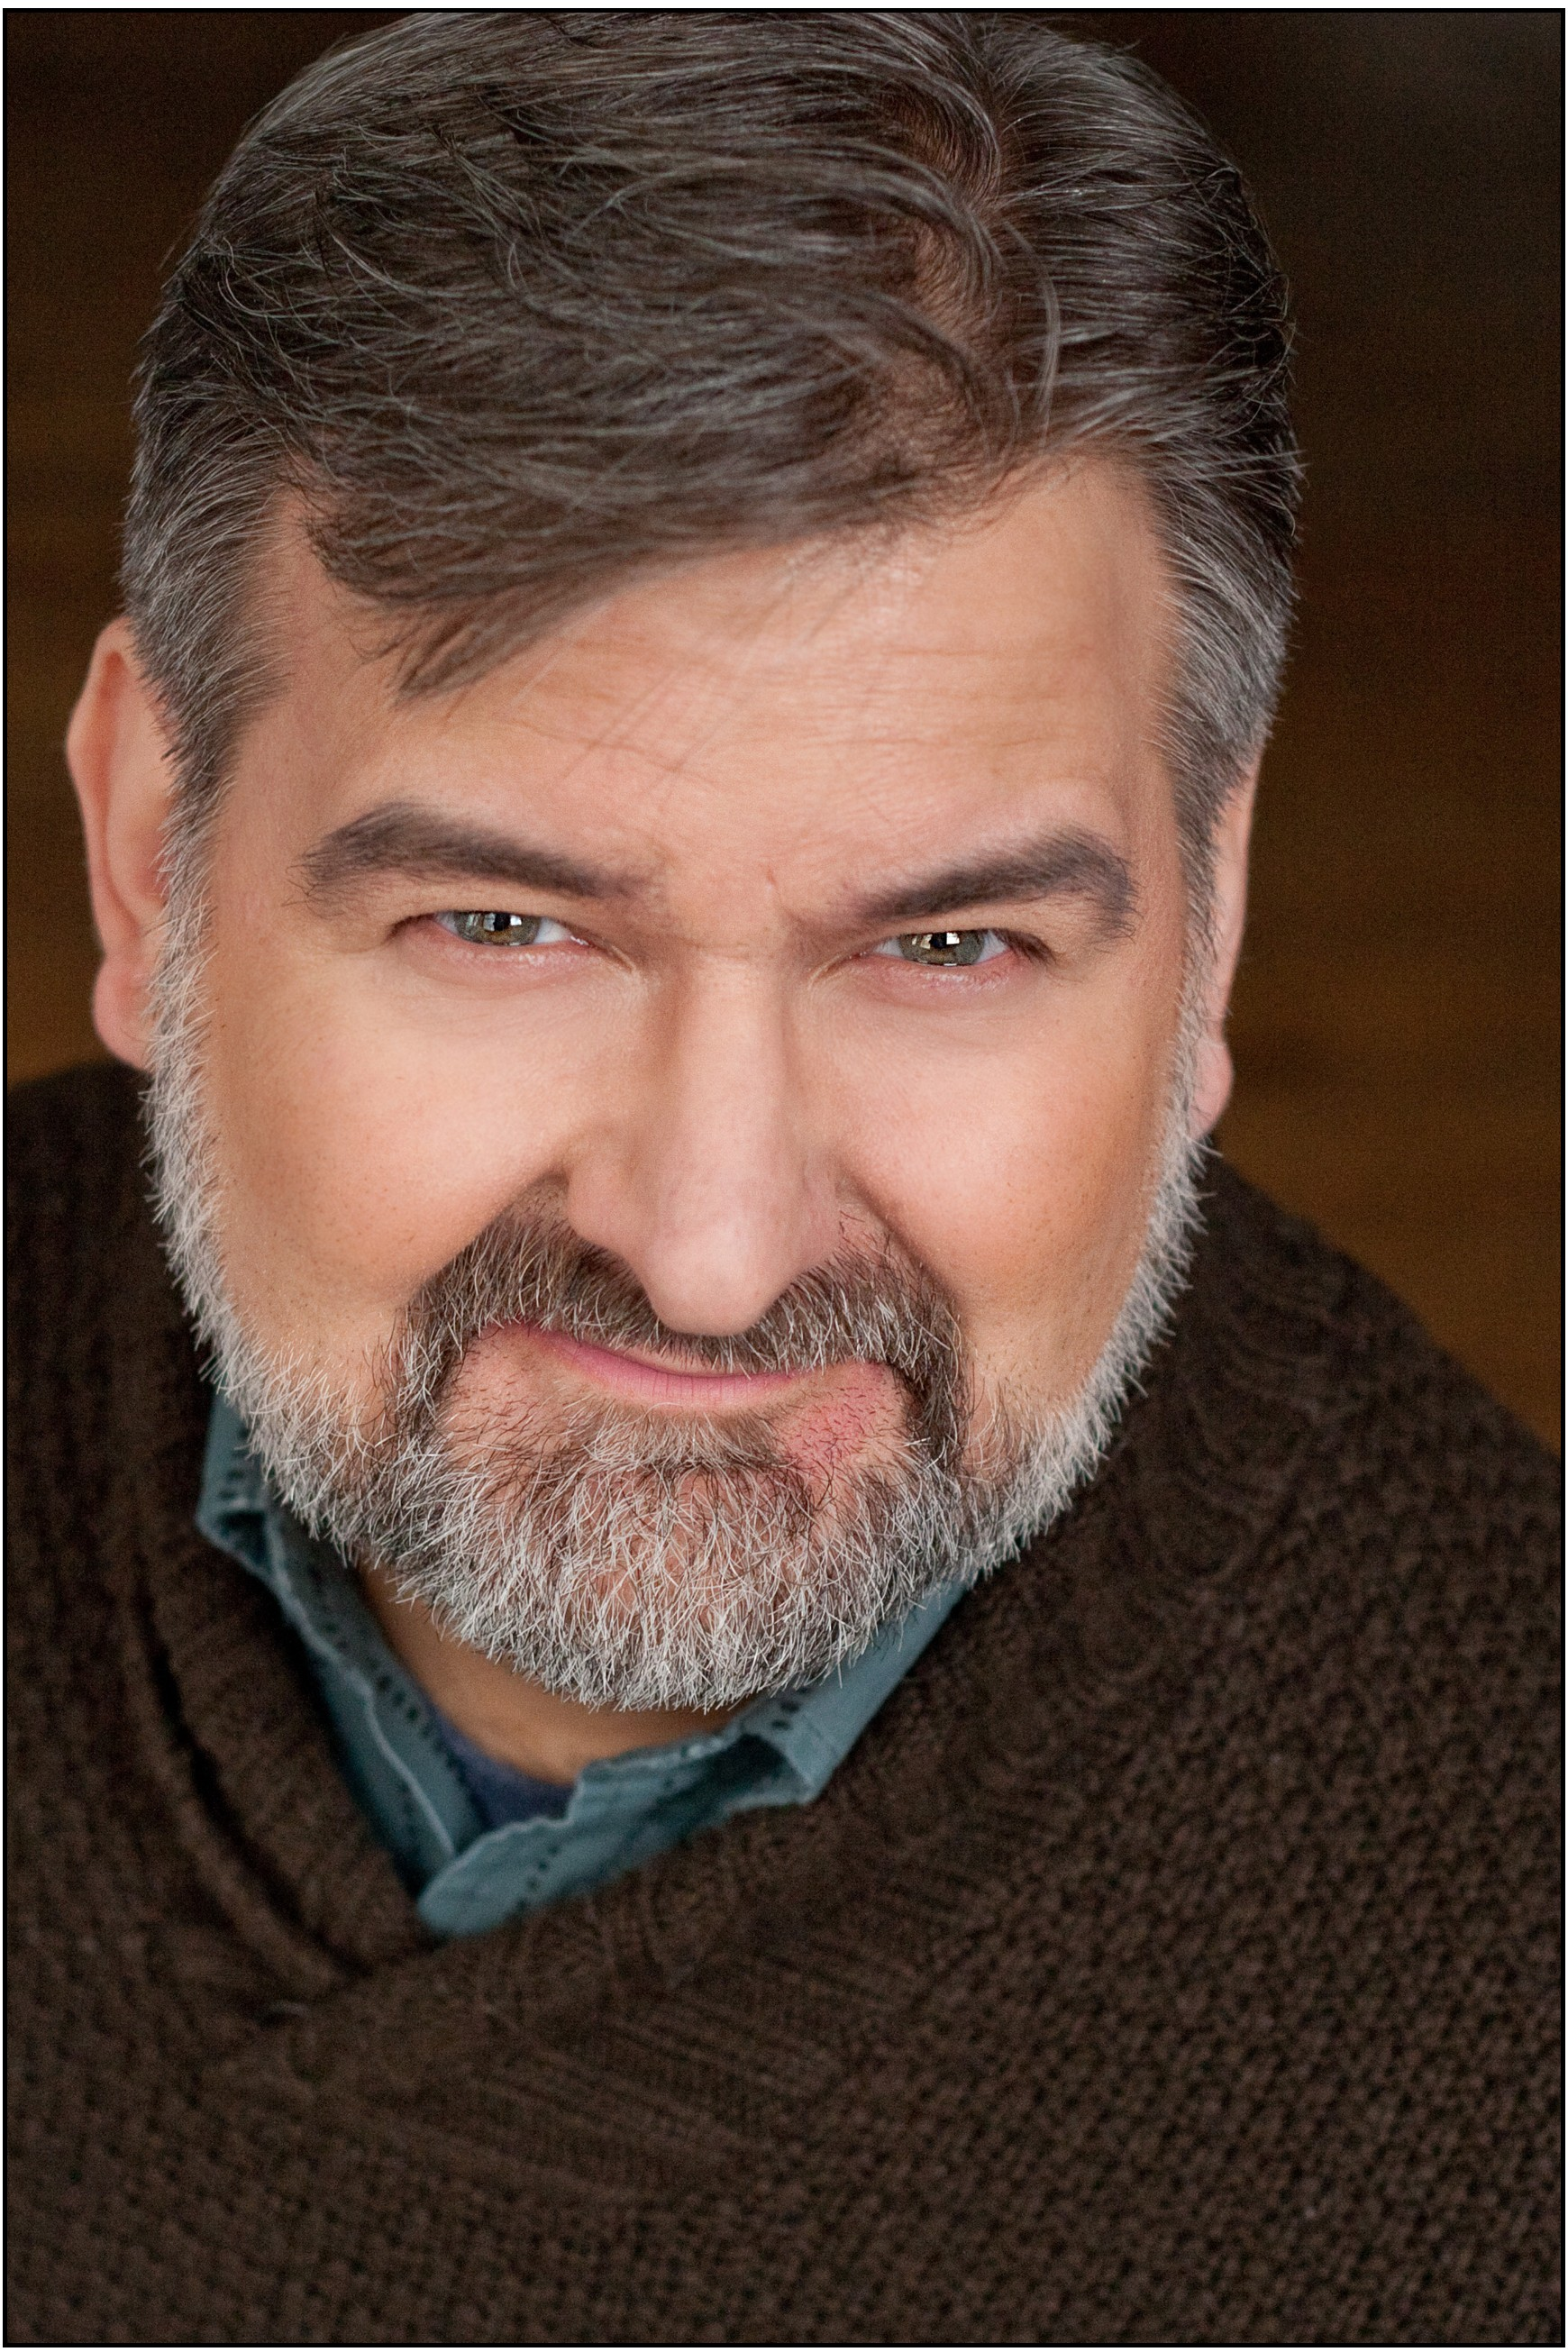 Keith Whipple a new headshot